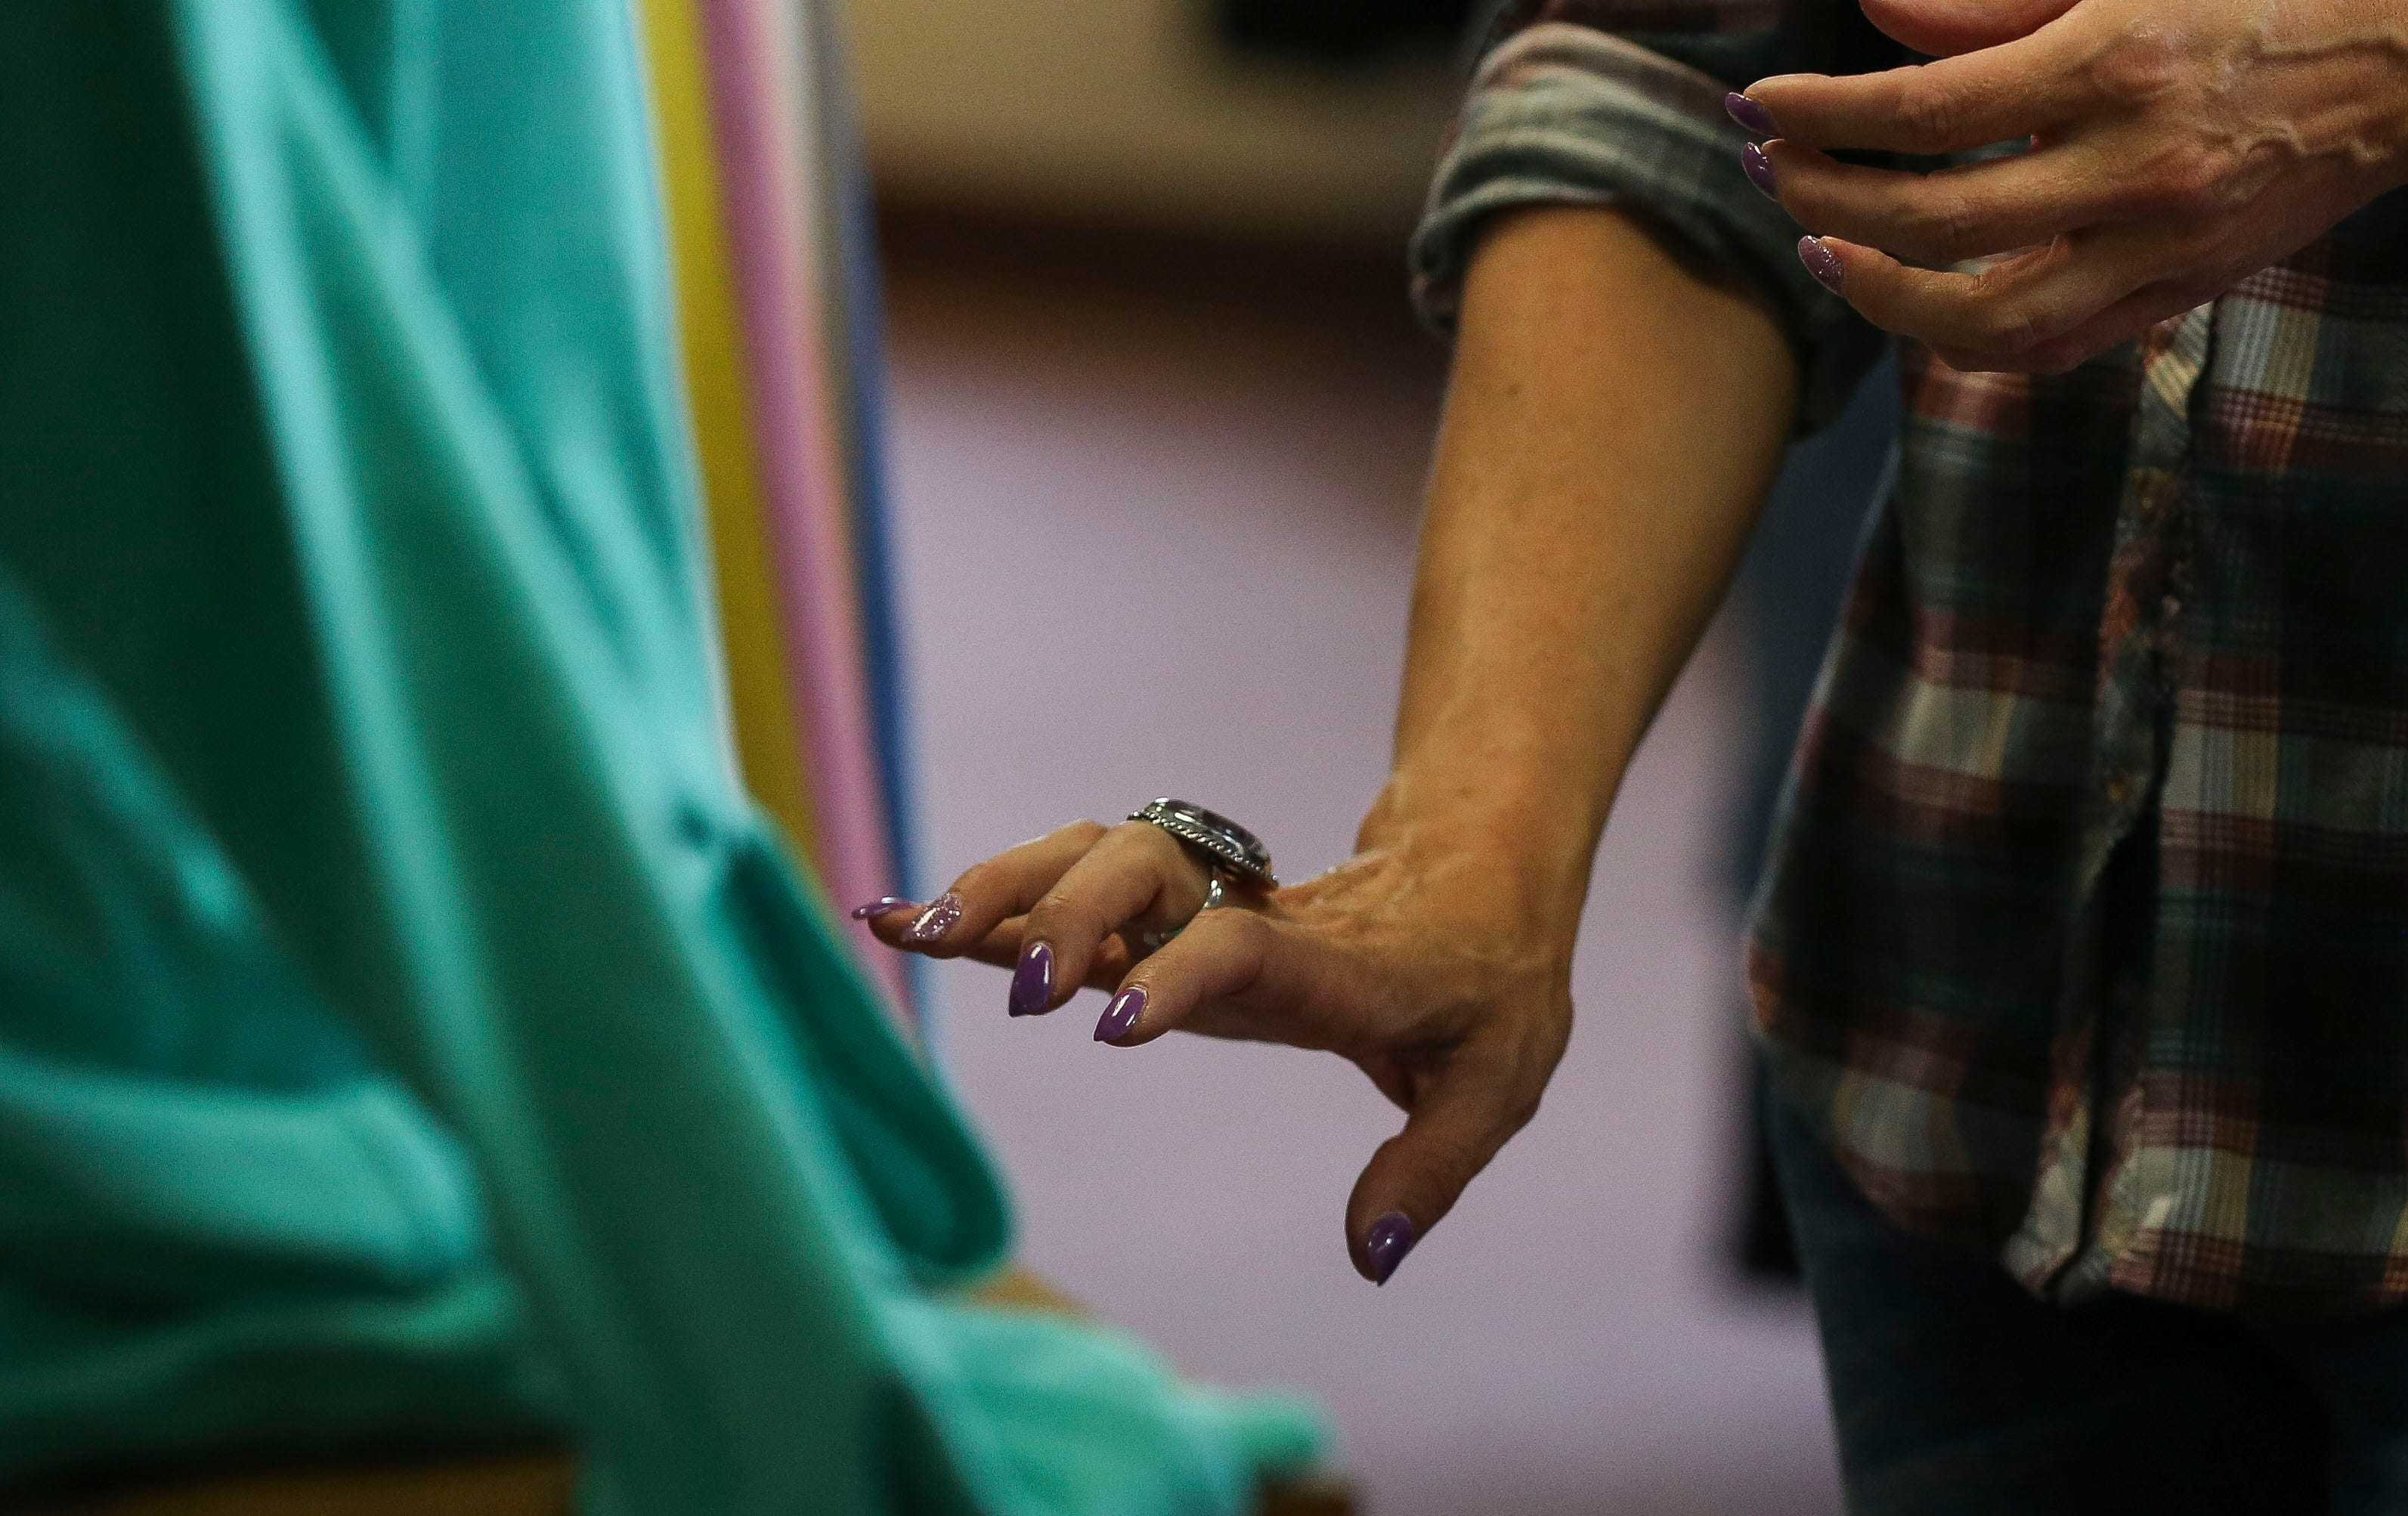 Shelly Spranger tries on a ring on Wednesday, June 12, 2019, at Rustic Redefined in Wisconsin Rapids, Wis.